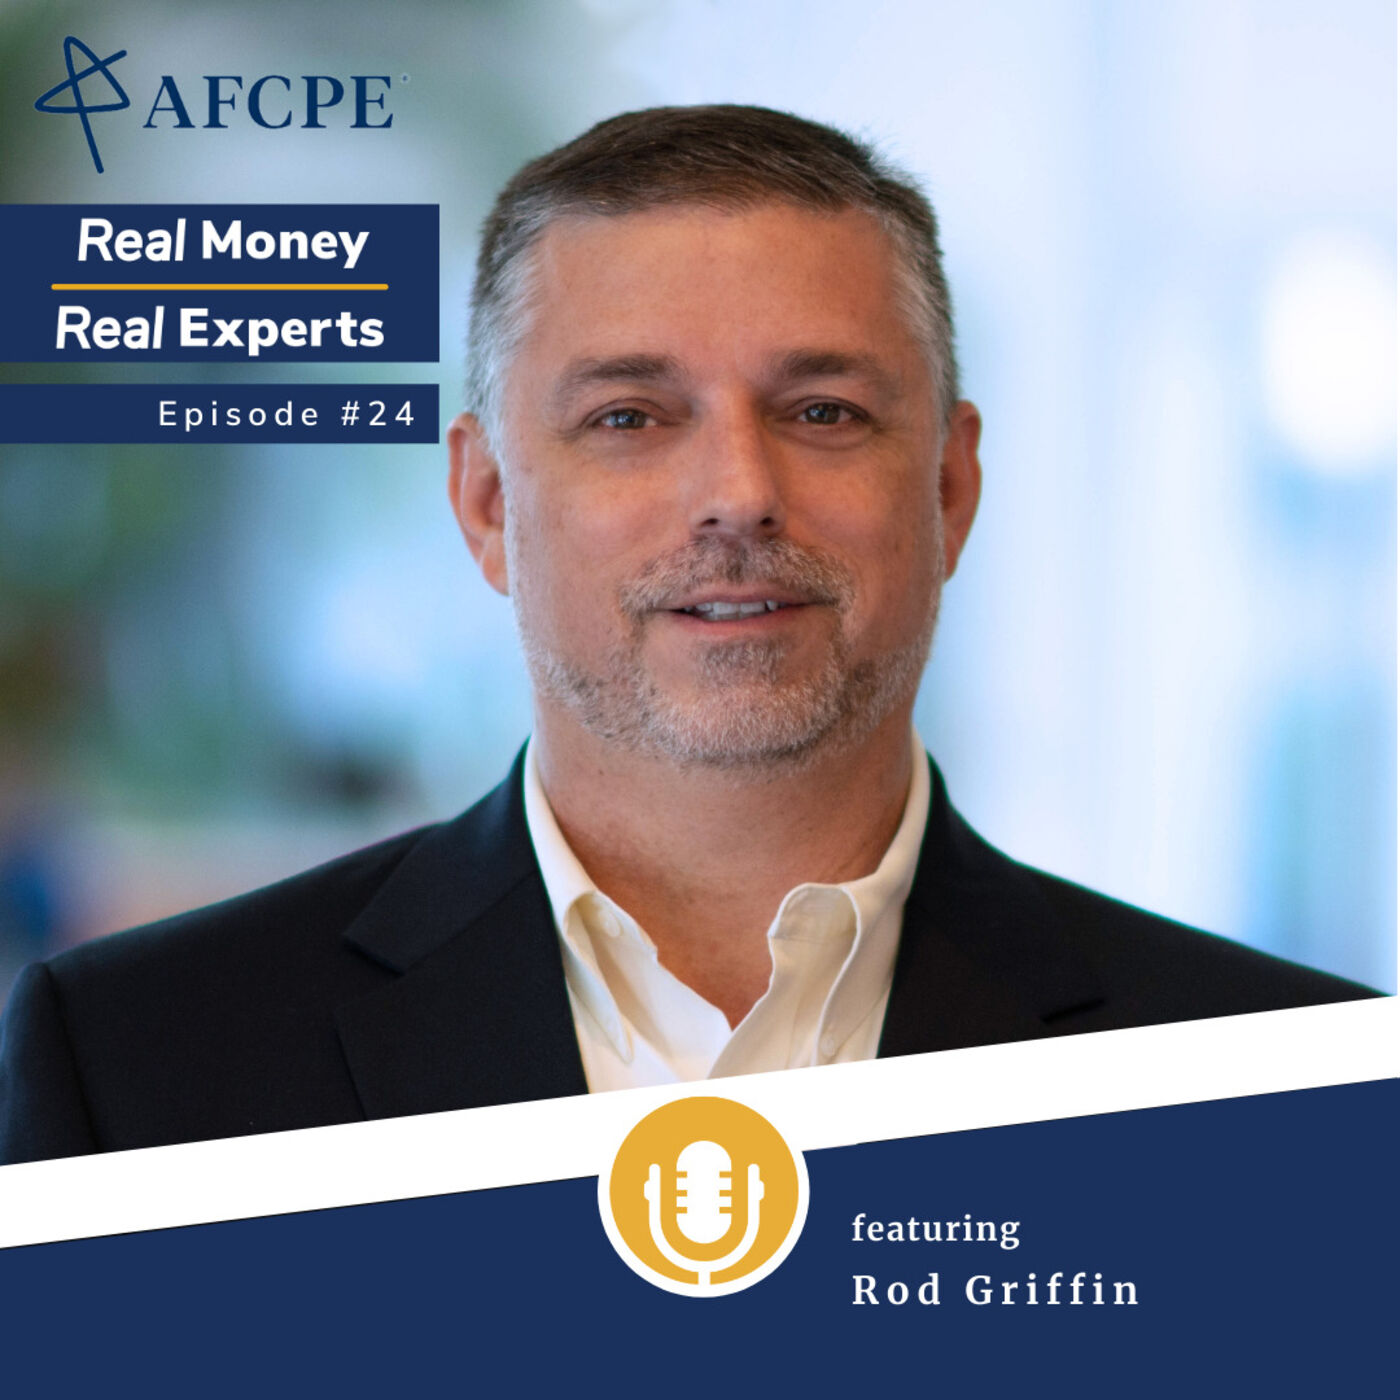 Demystifying Credit with Experian's Rod Griffin